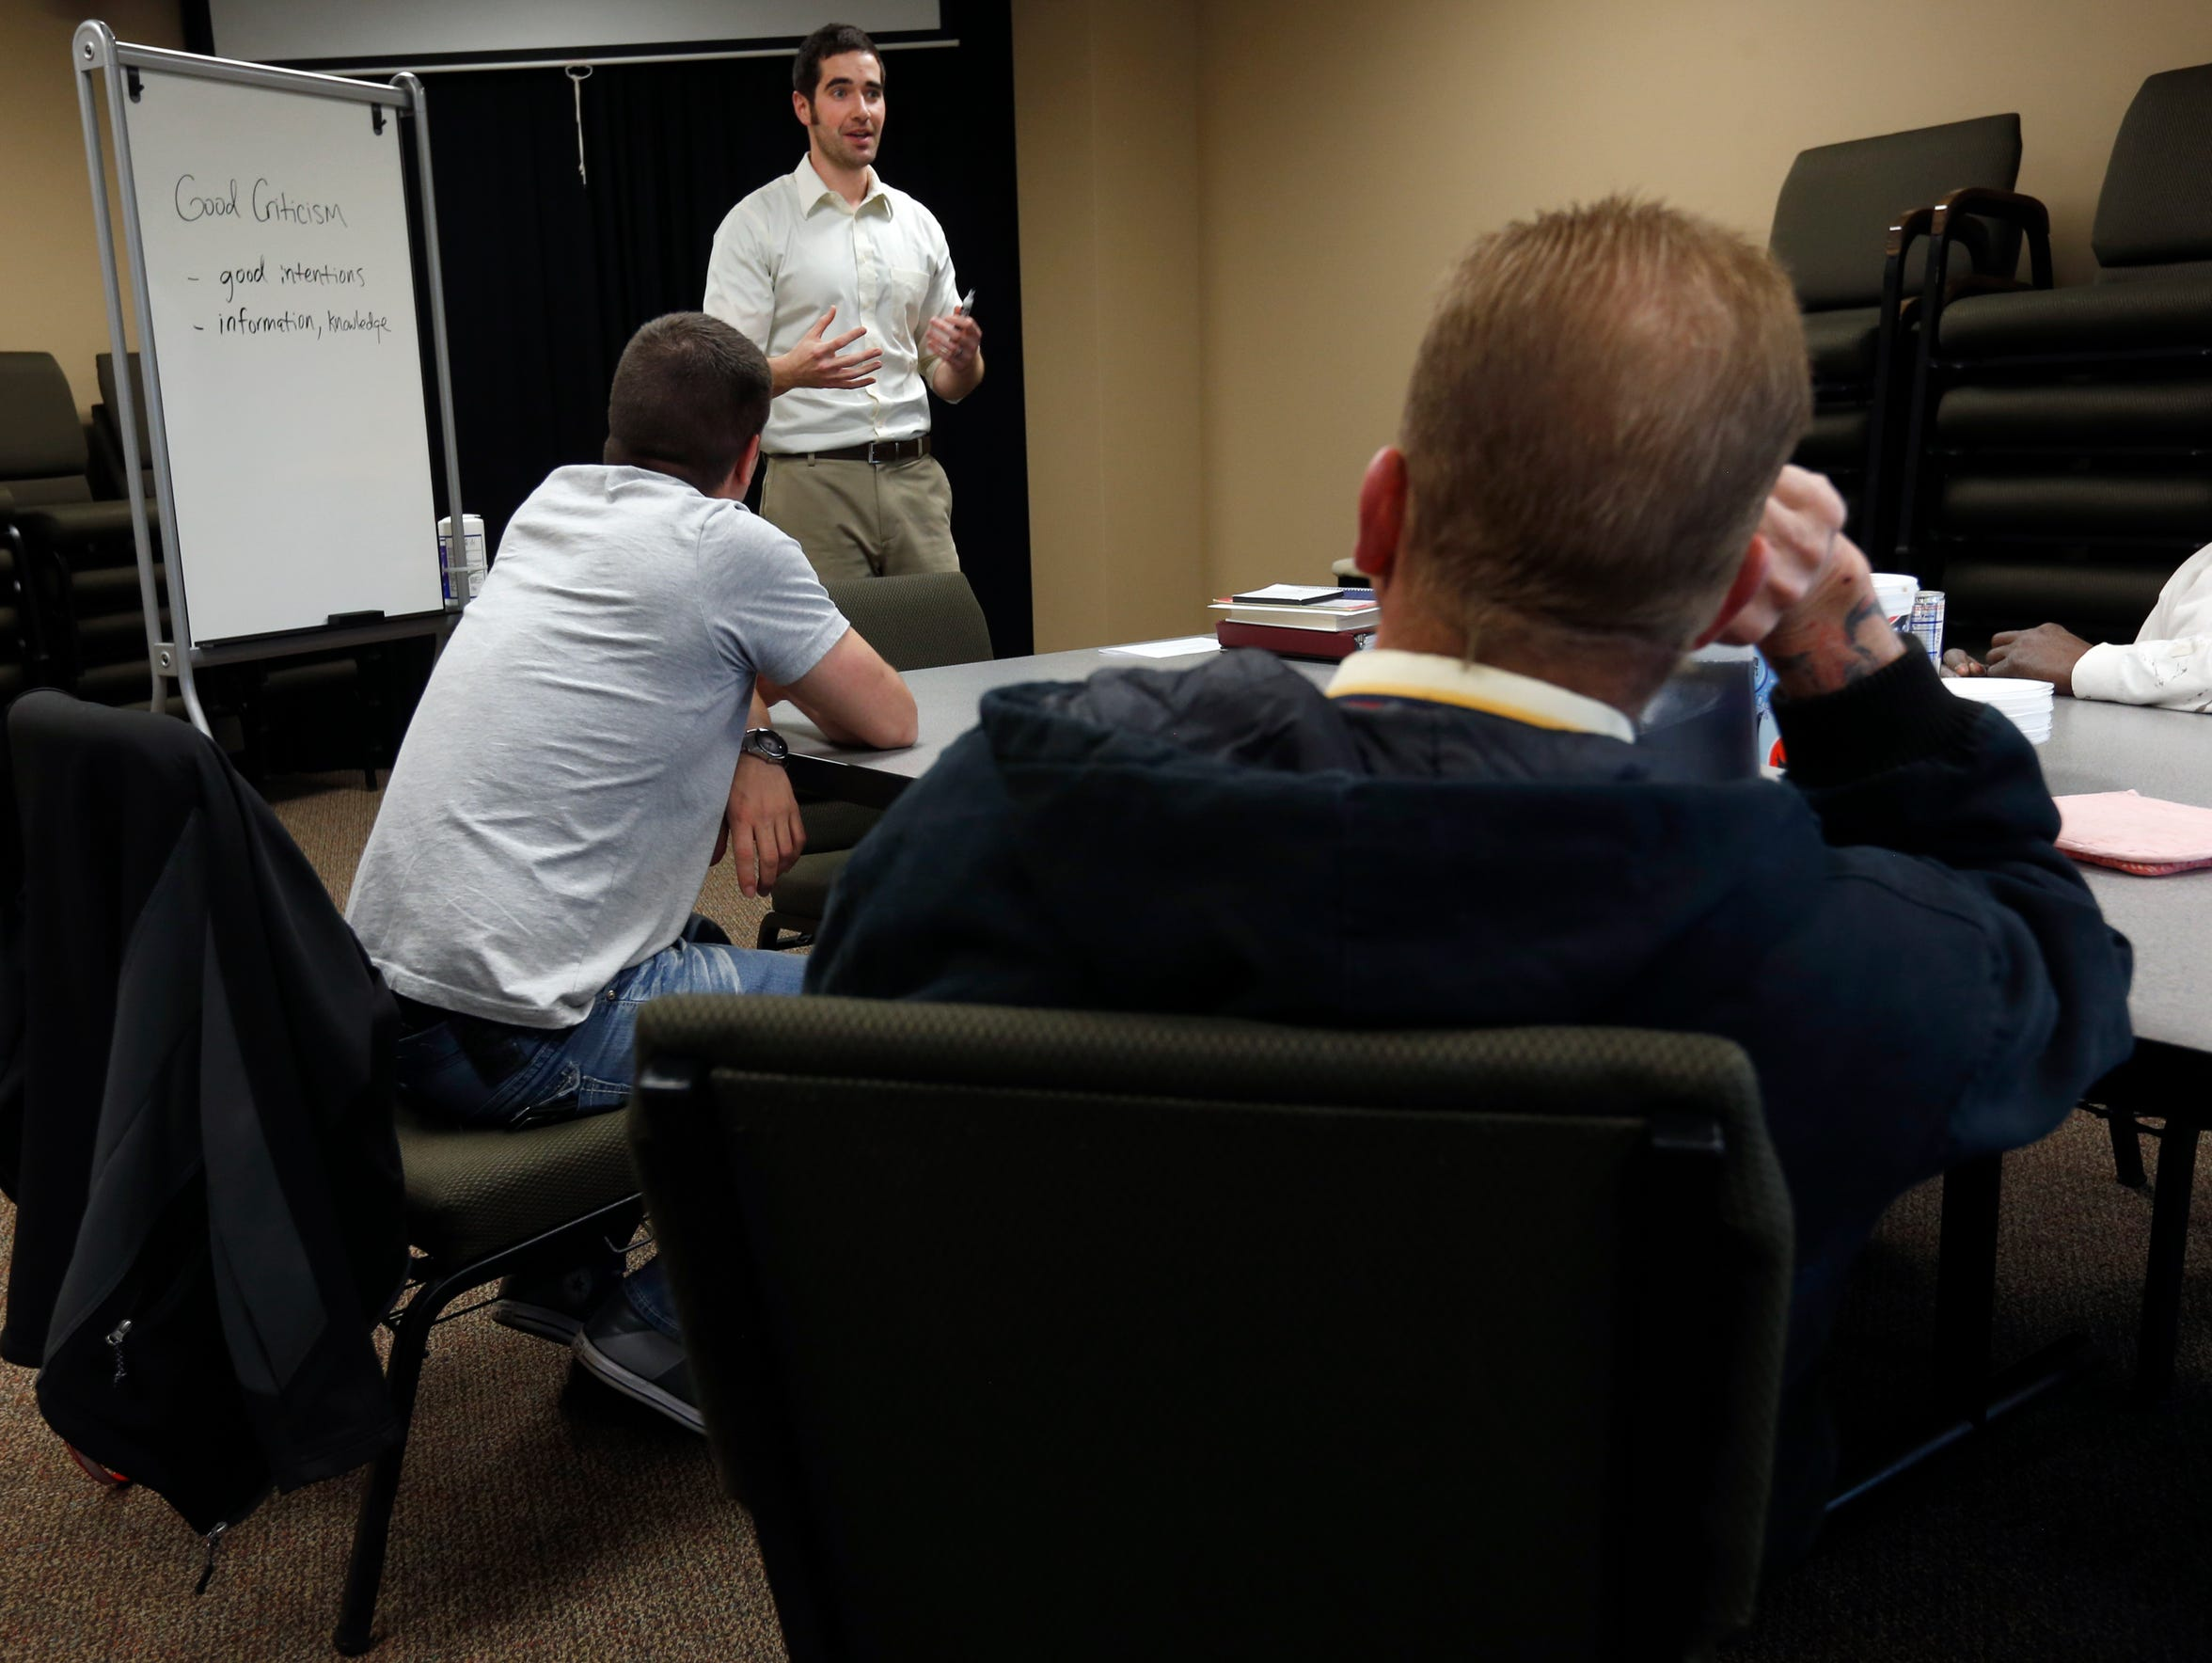 Counselor Austin Boon talks with a group of men about